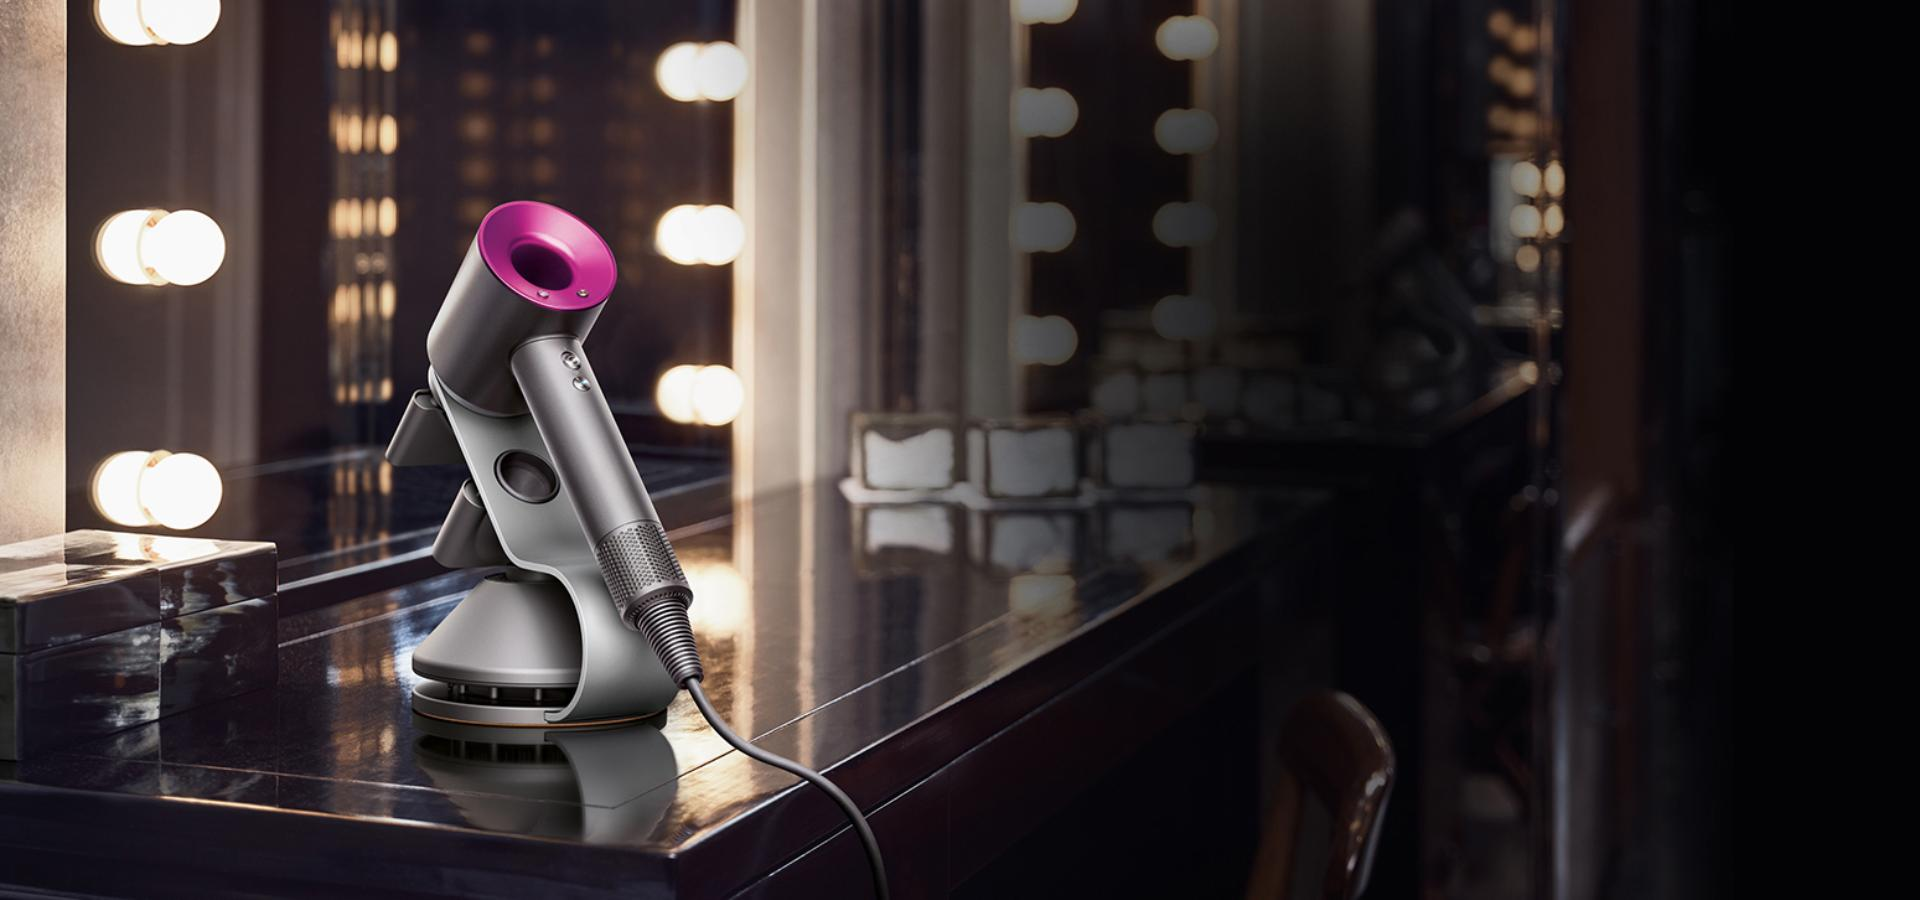 Dyson supersonic on stand in hotel room